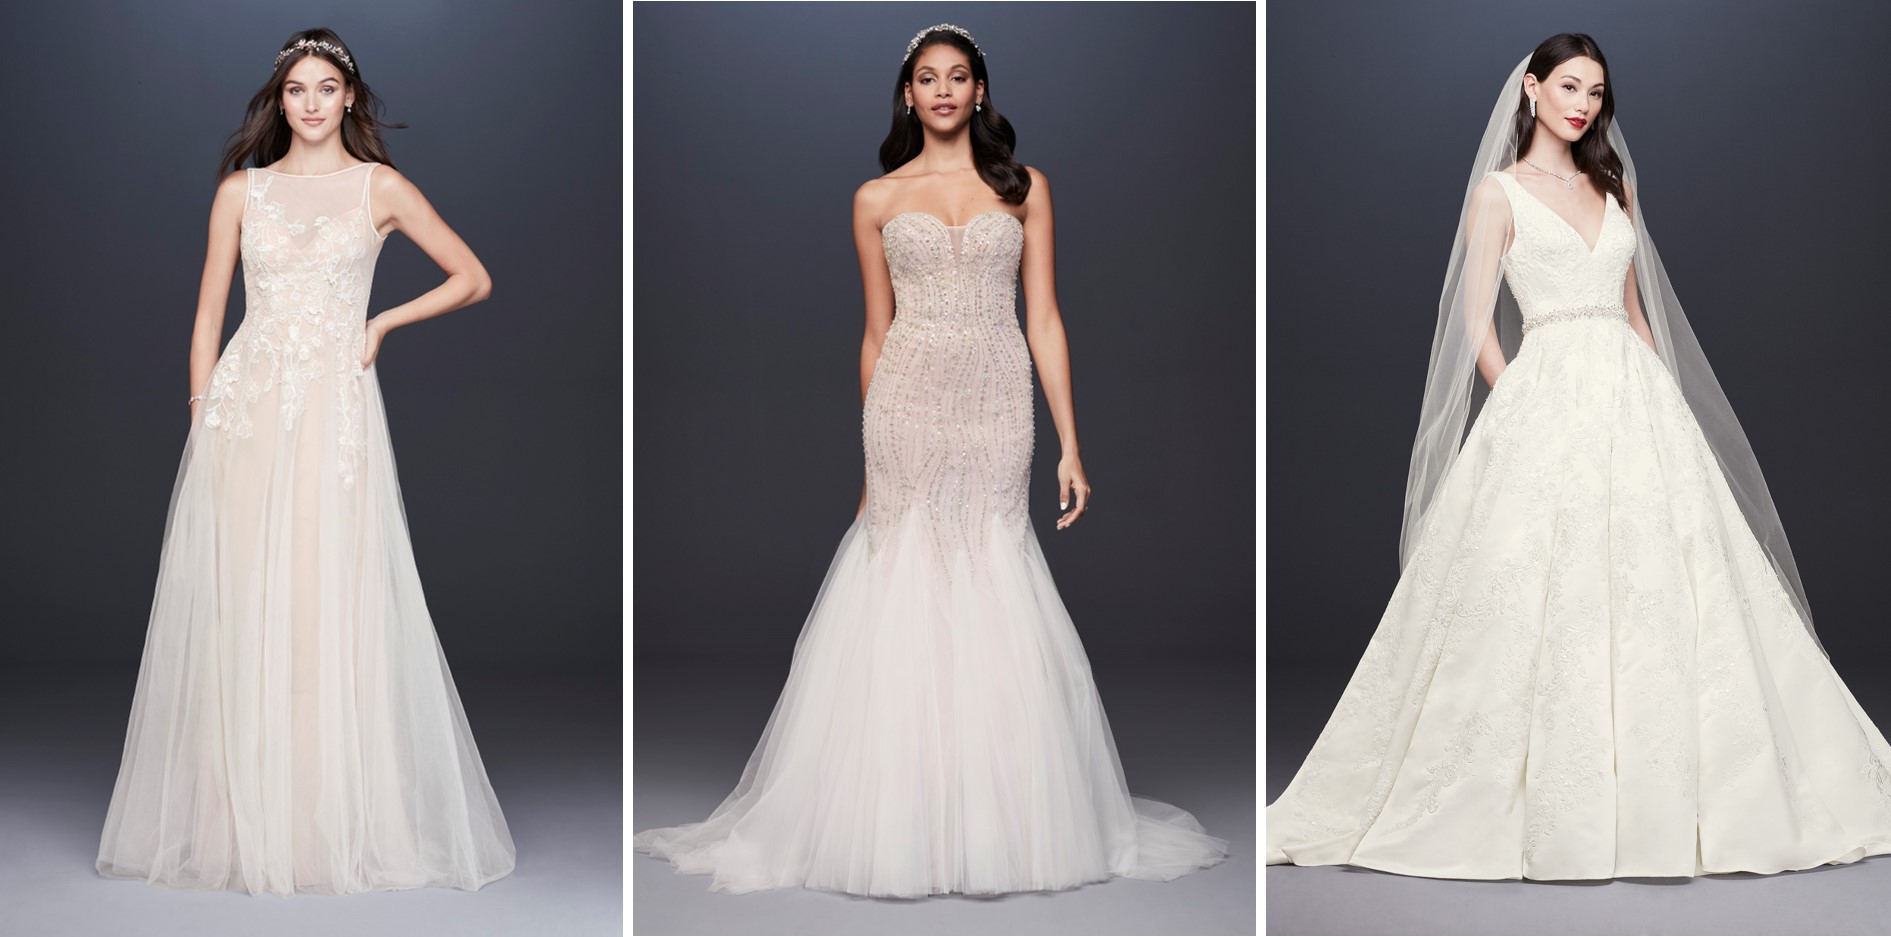 Three wedding dresses on sale during David's Bridal's President's Day Weekend Sale: tulle wedding dress with floral bodice and illusion neckline, strapless trumpet wedding dress with elaborate crystal beading, and a floral embossed V-beck ball gown.